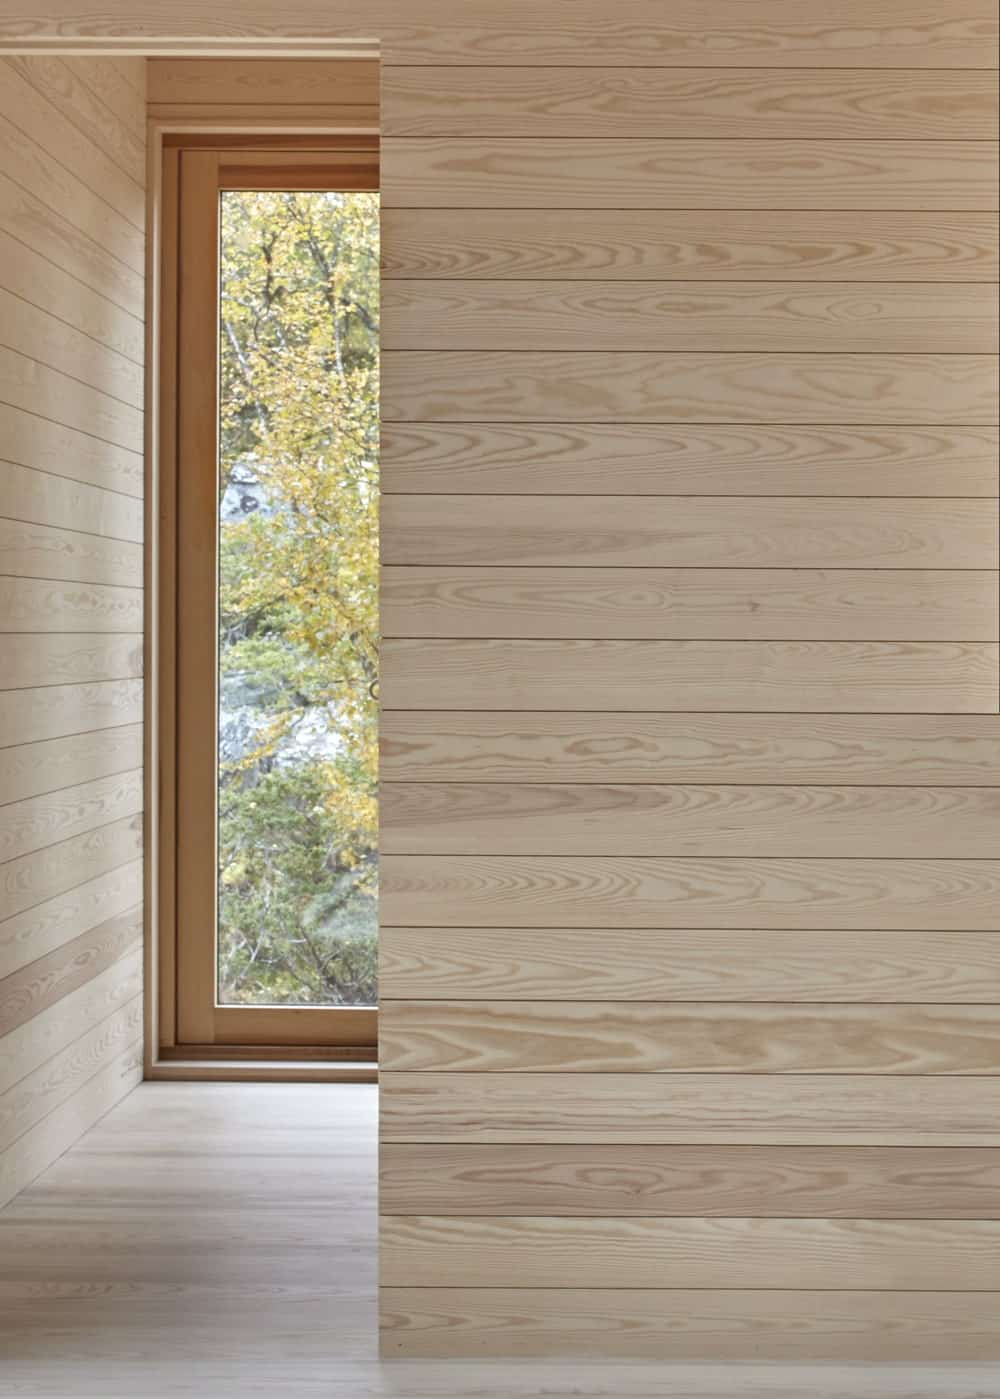 The light tone of the shiplap walls of the interiors of the house are further brightened by the abundance of natural light that goes in from the glass walls.